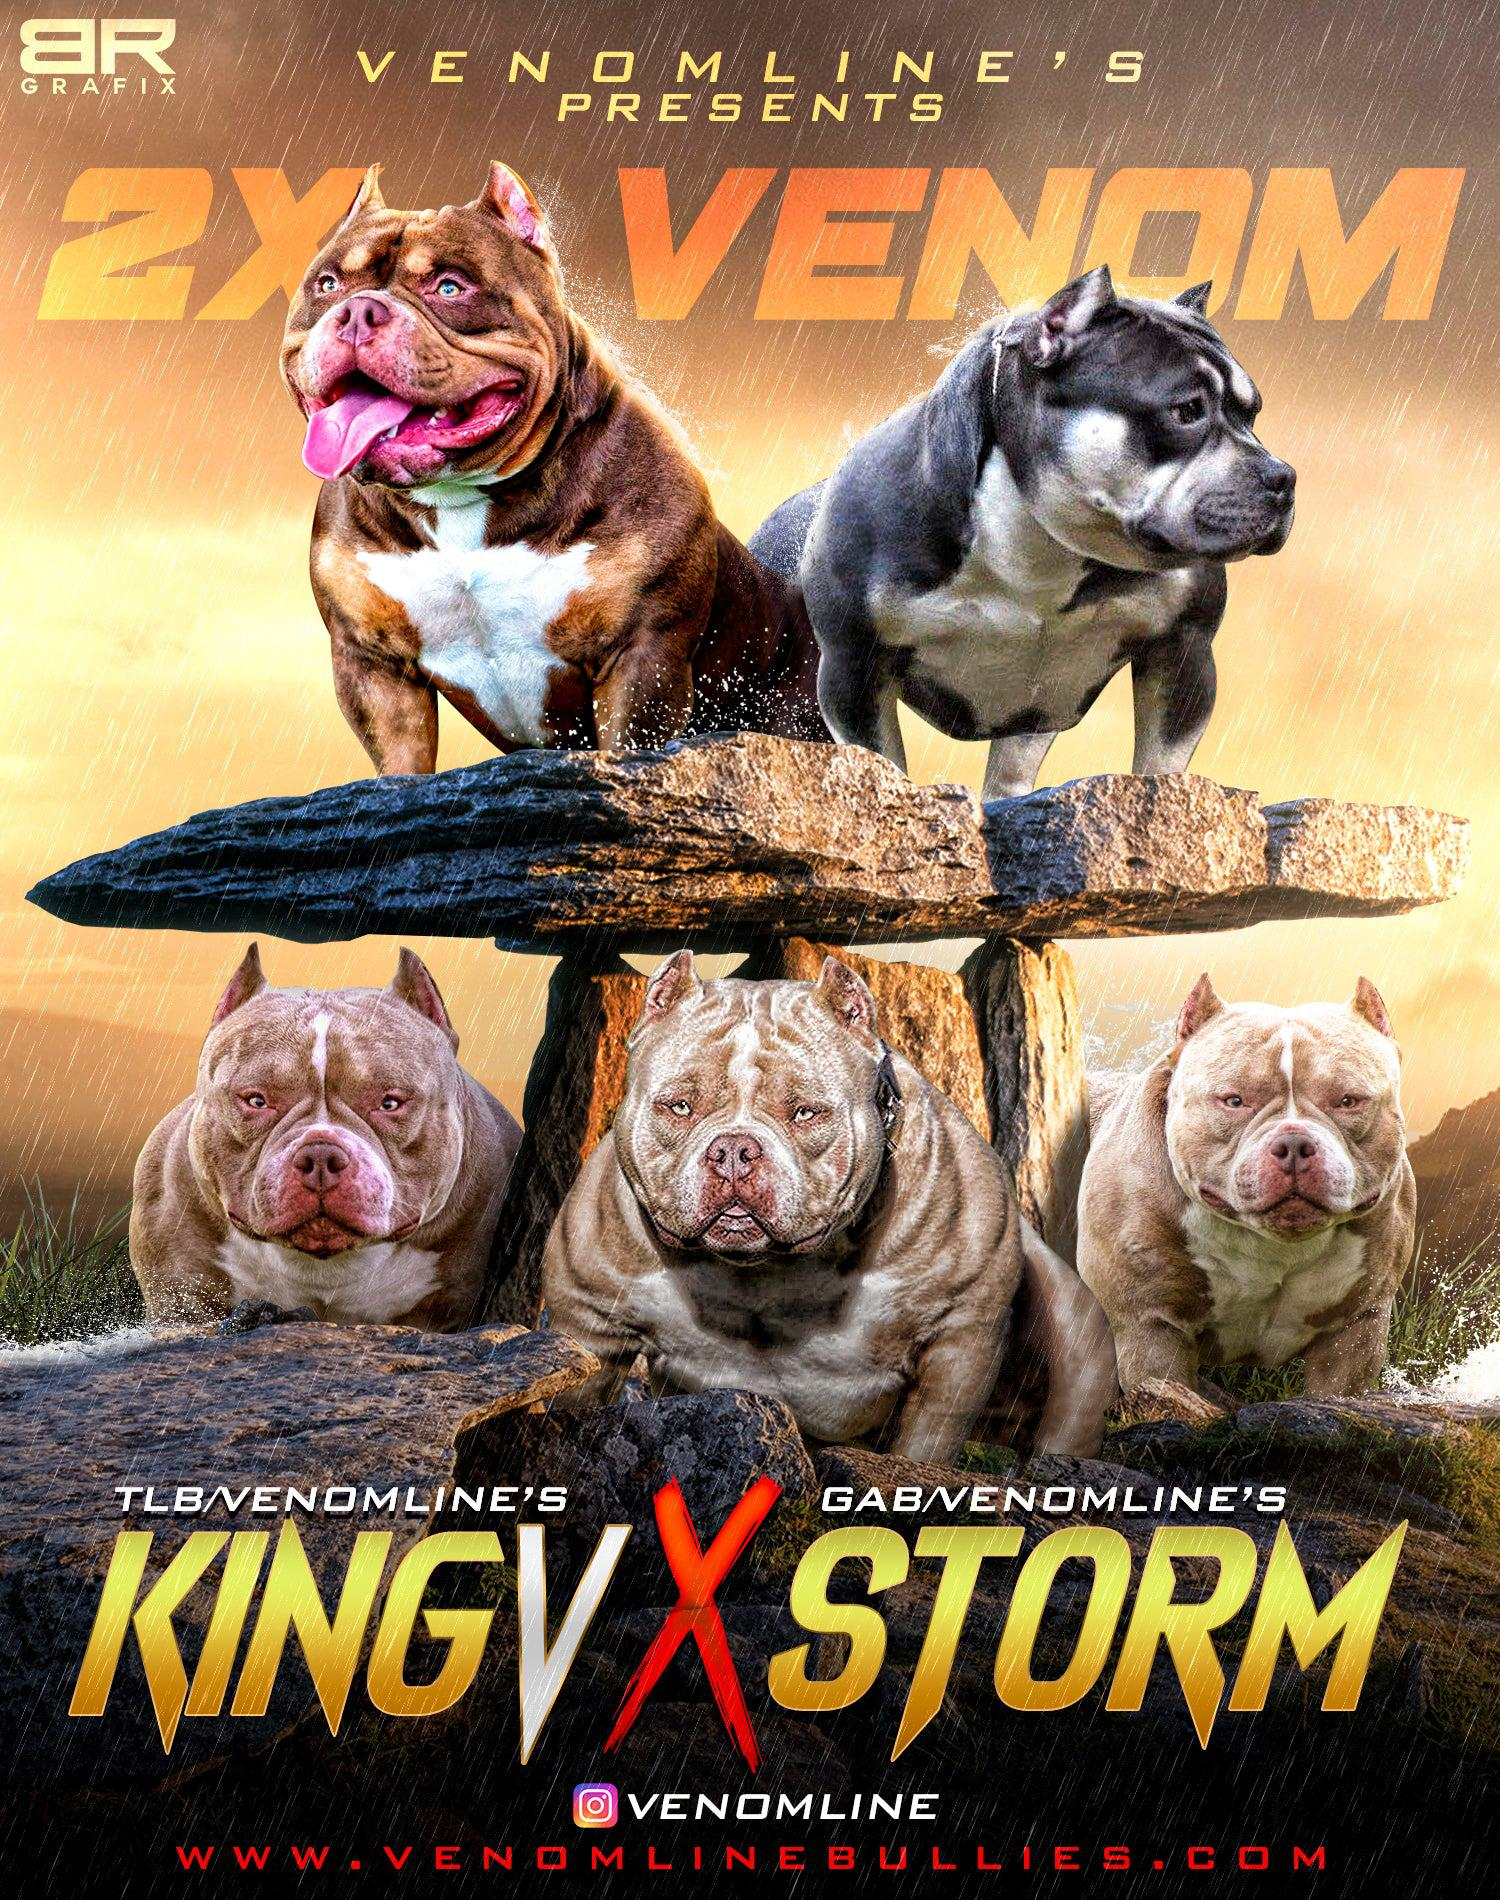 american bully puppies, puppies for sale, venomline, pocket bully, micro bully, exotic bully, extreme bully, puppies for sale